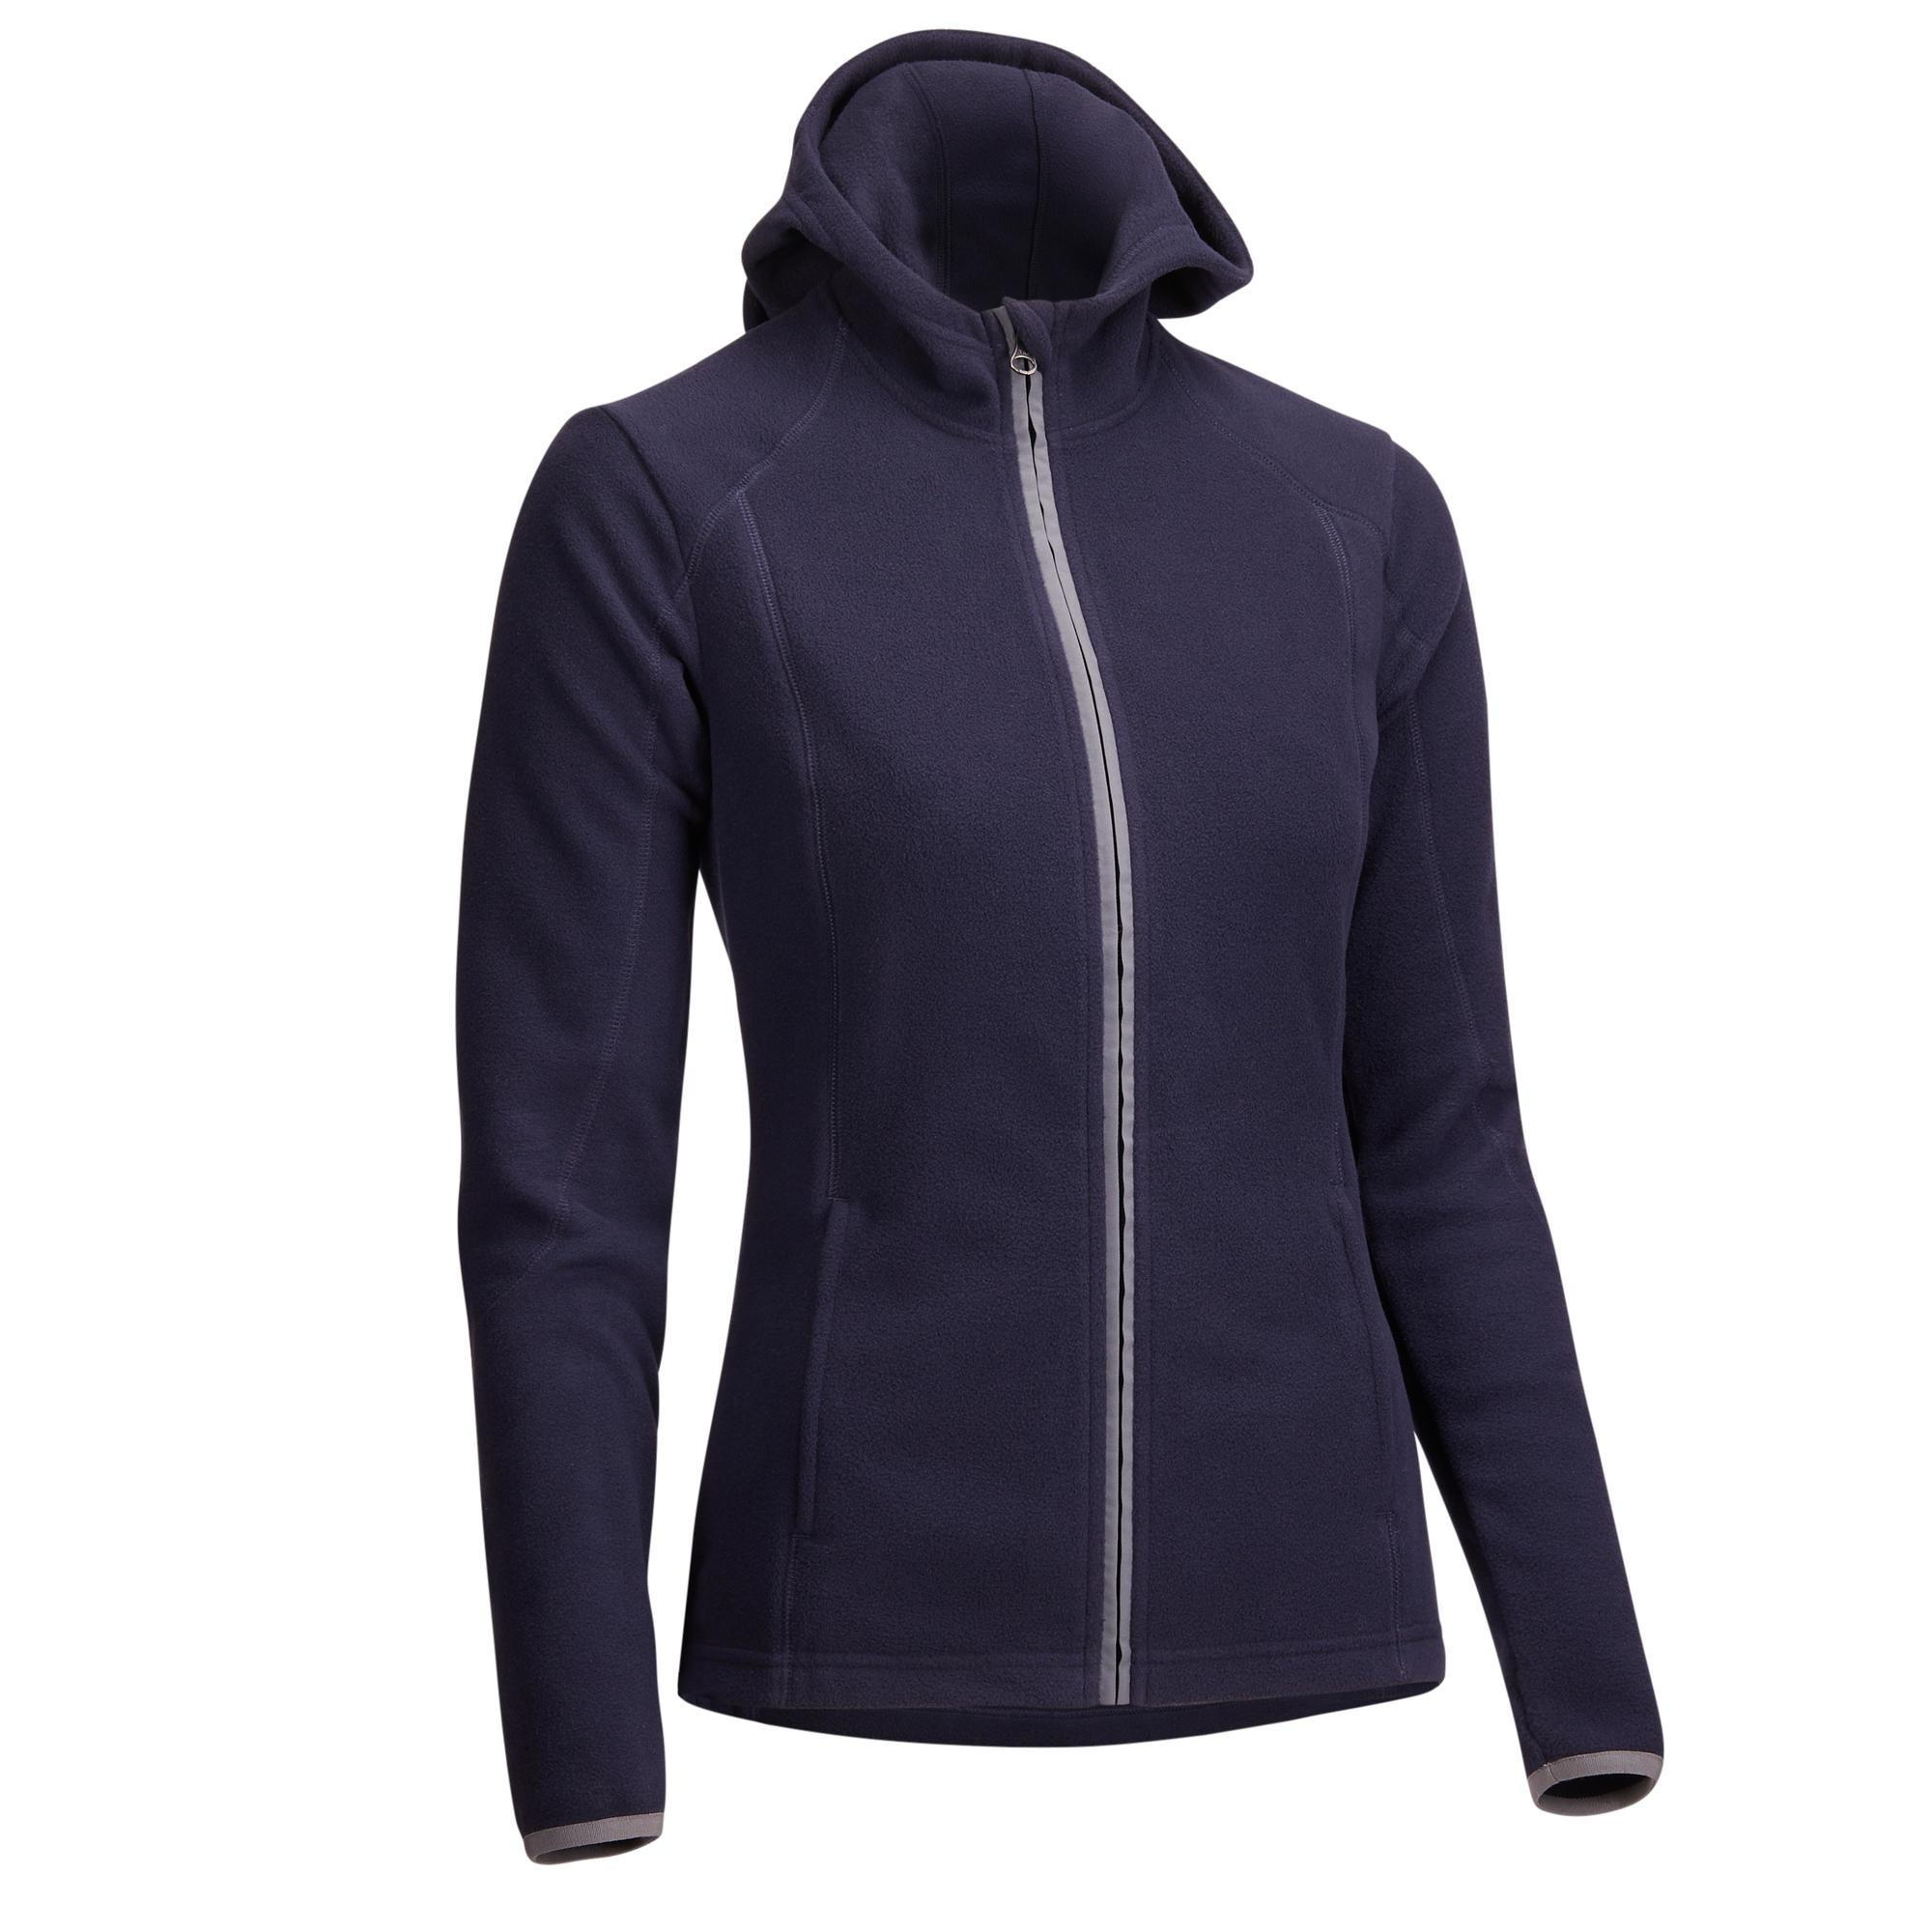 Fouganza 2-in-1 fleece dameshoodie ruitersport marineblauw